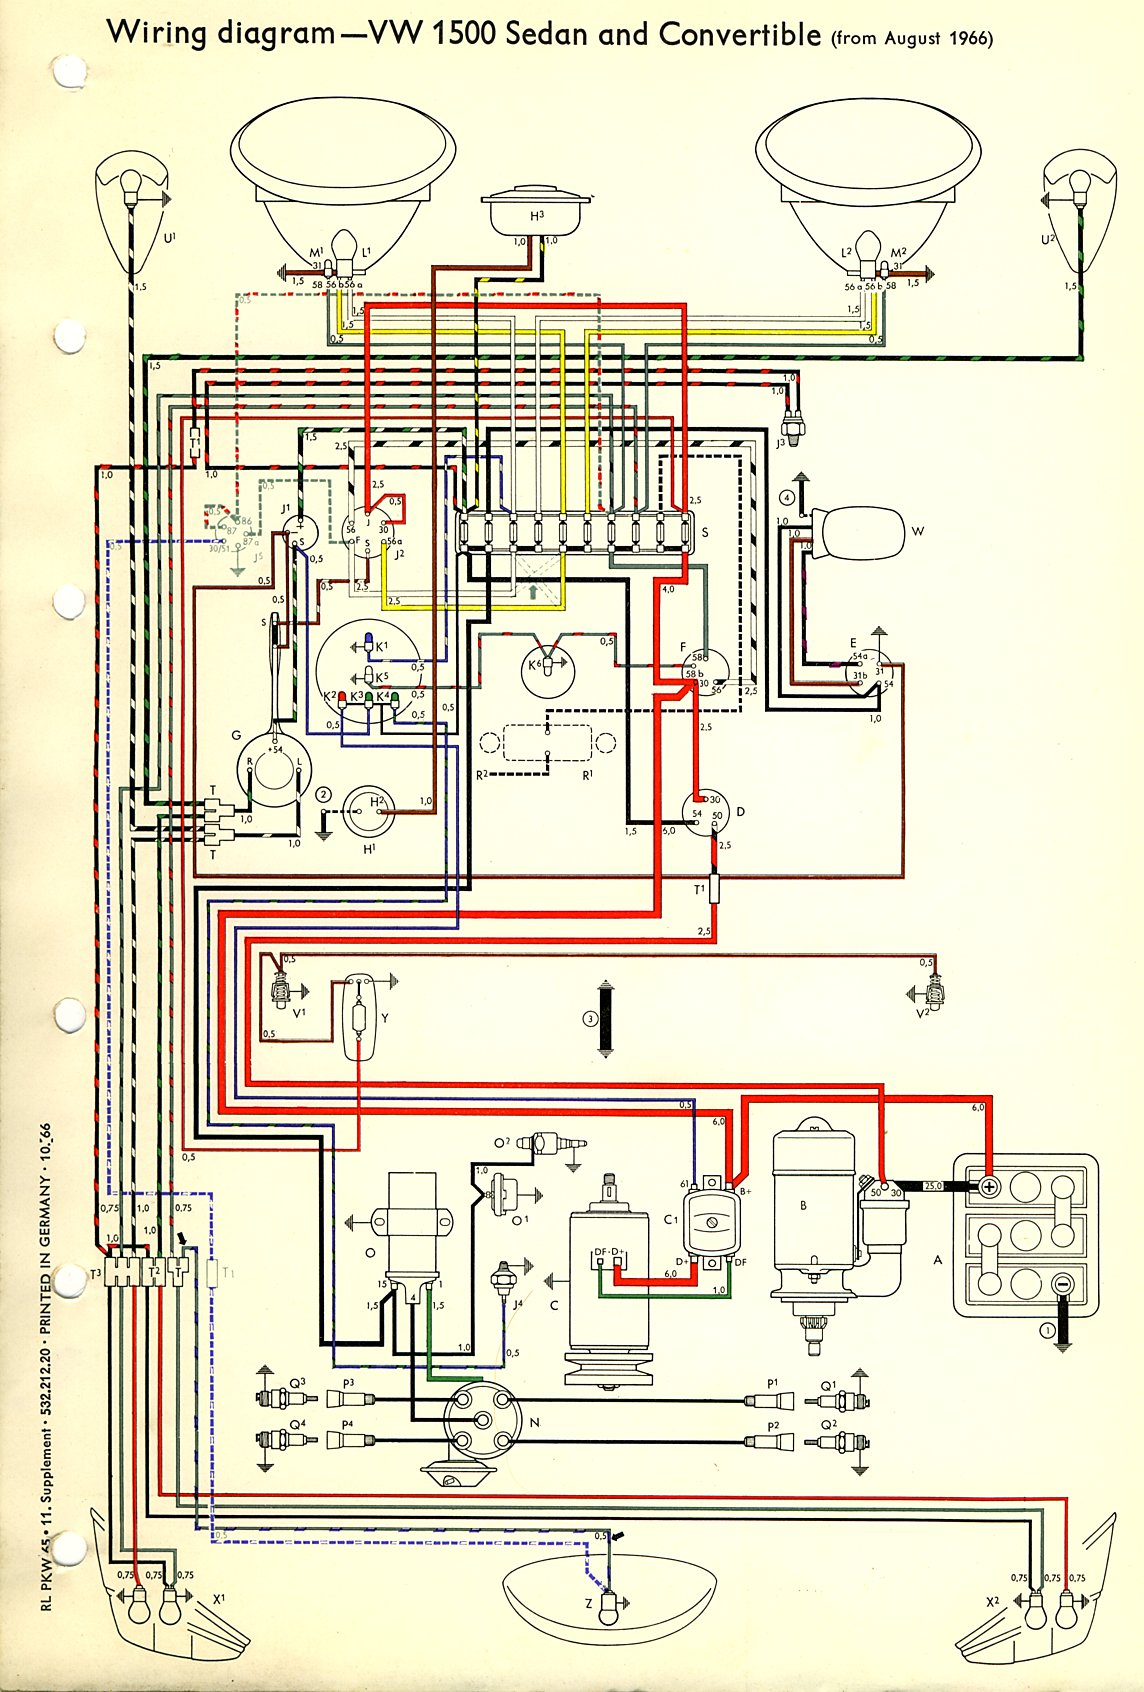 bug_67 1949 vw wiring diagram on 1949 download wirning diagrams 74 VW Beetle Wiring Diagram at crackthecode.co